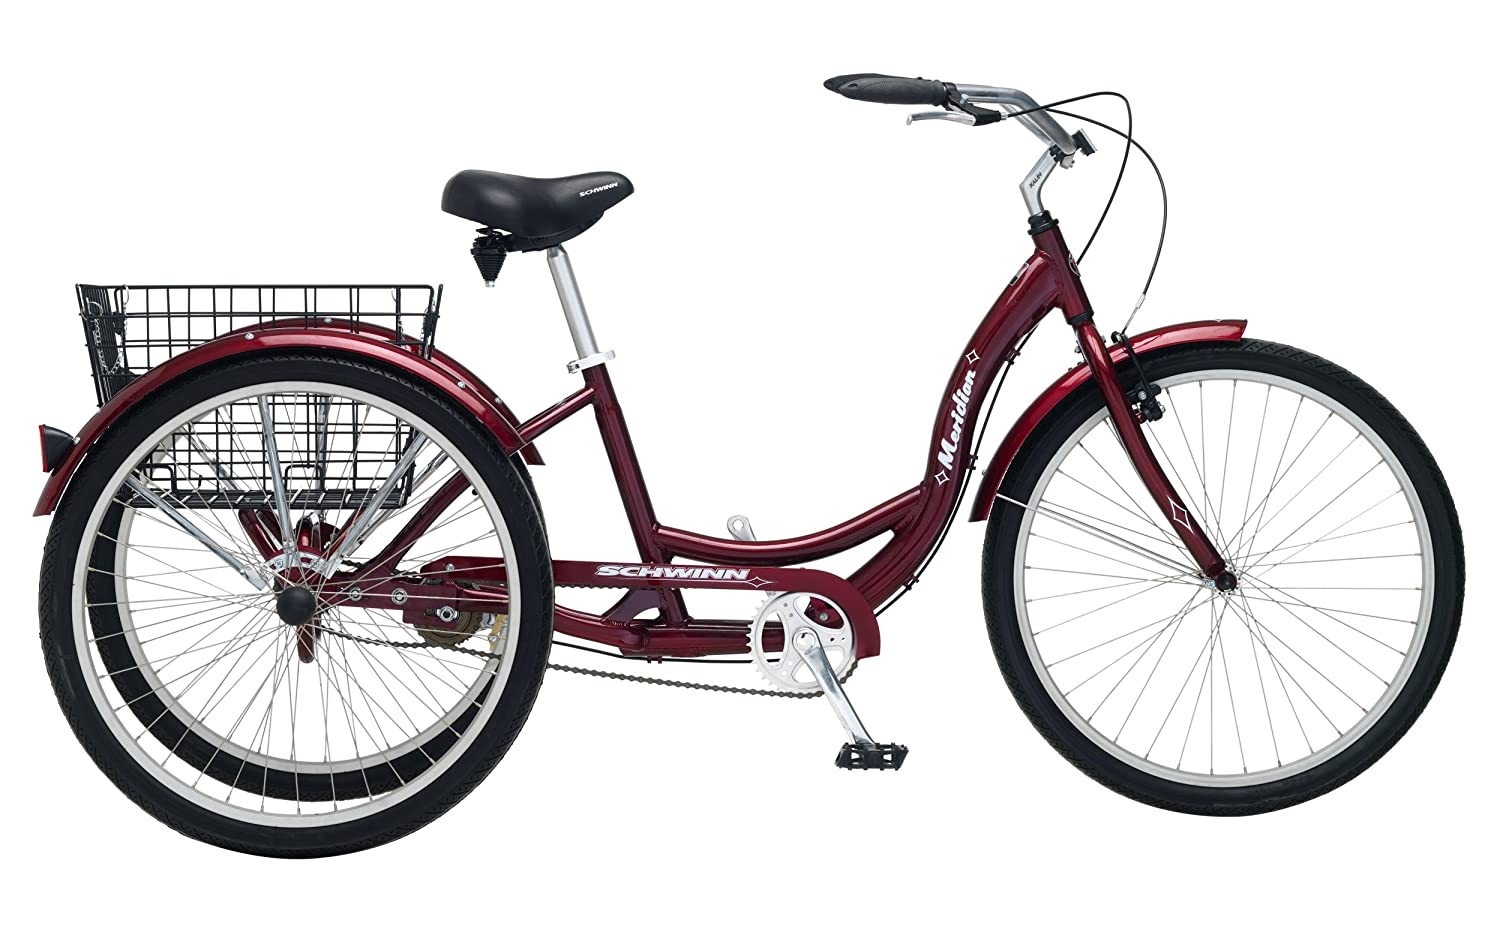 3 Wheel Bikes For Seniors Adult Inch Wheel Bike